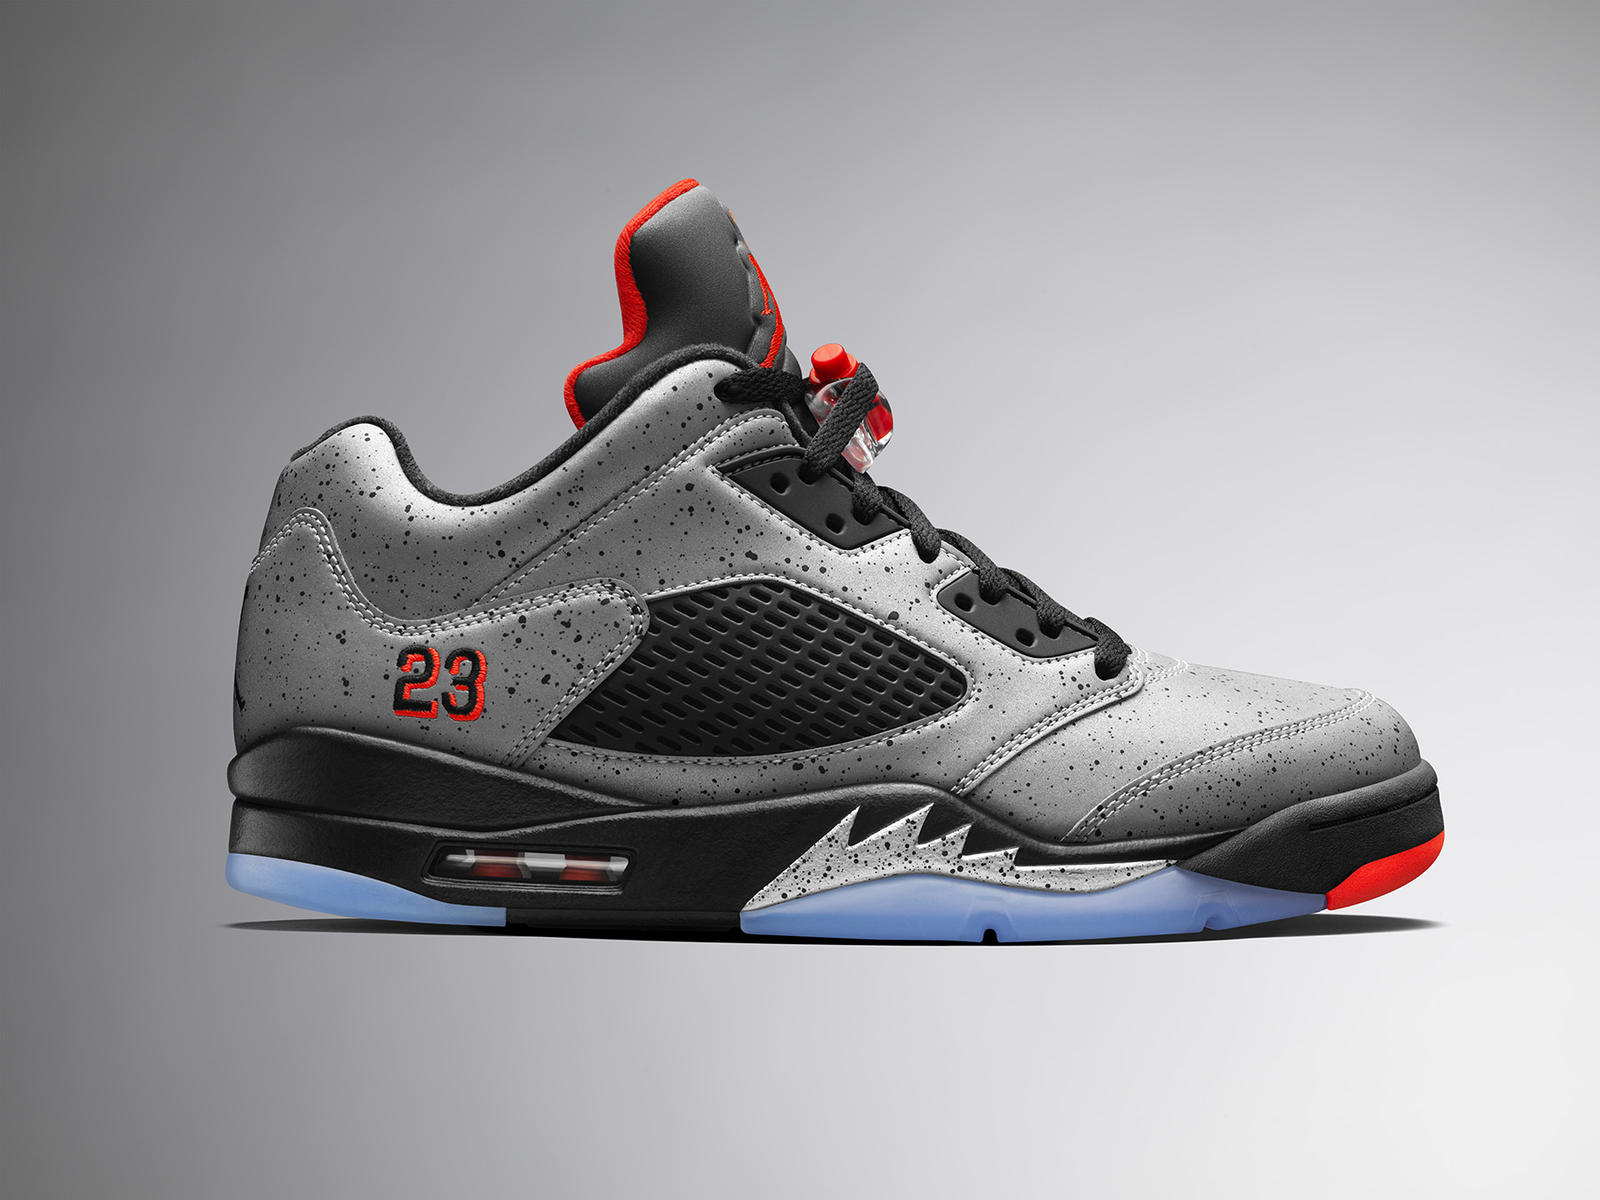 Nike Jordan Shoes – Comes with best feature